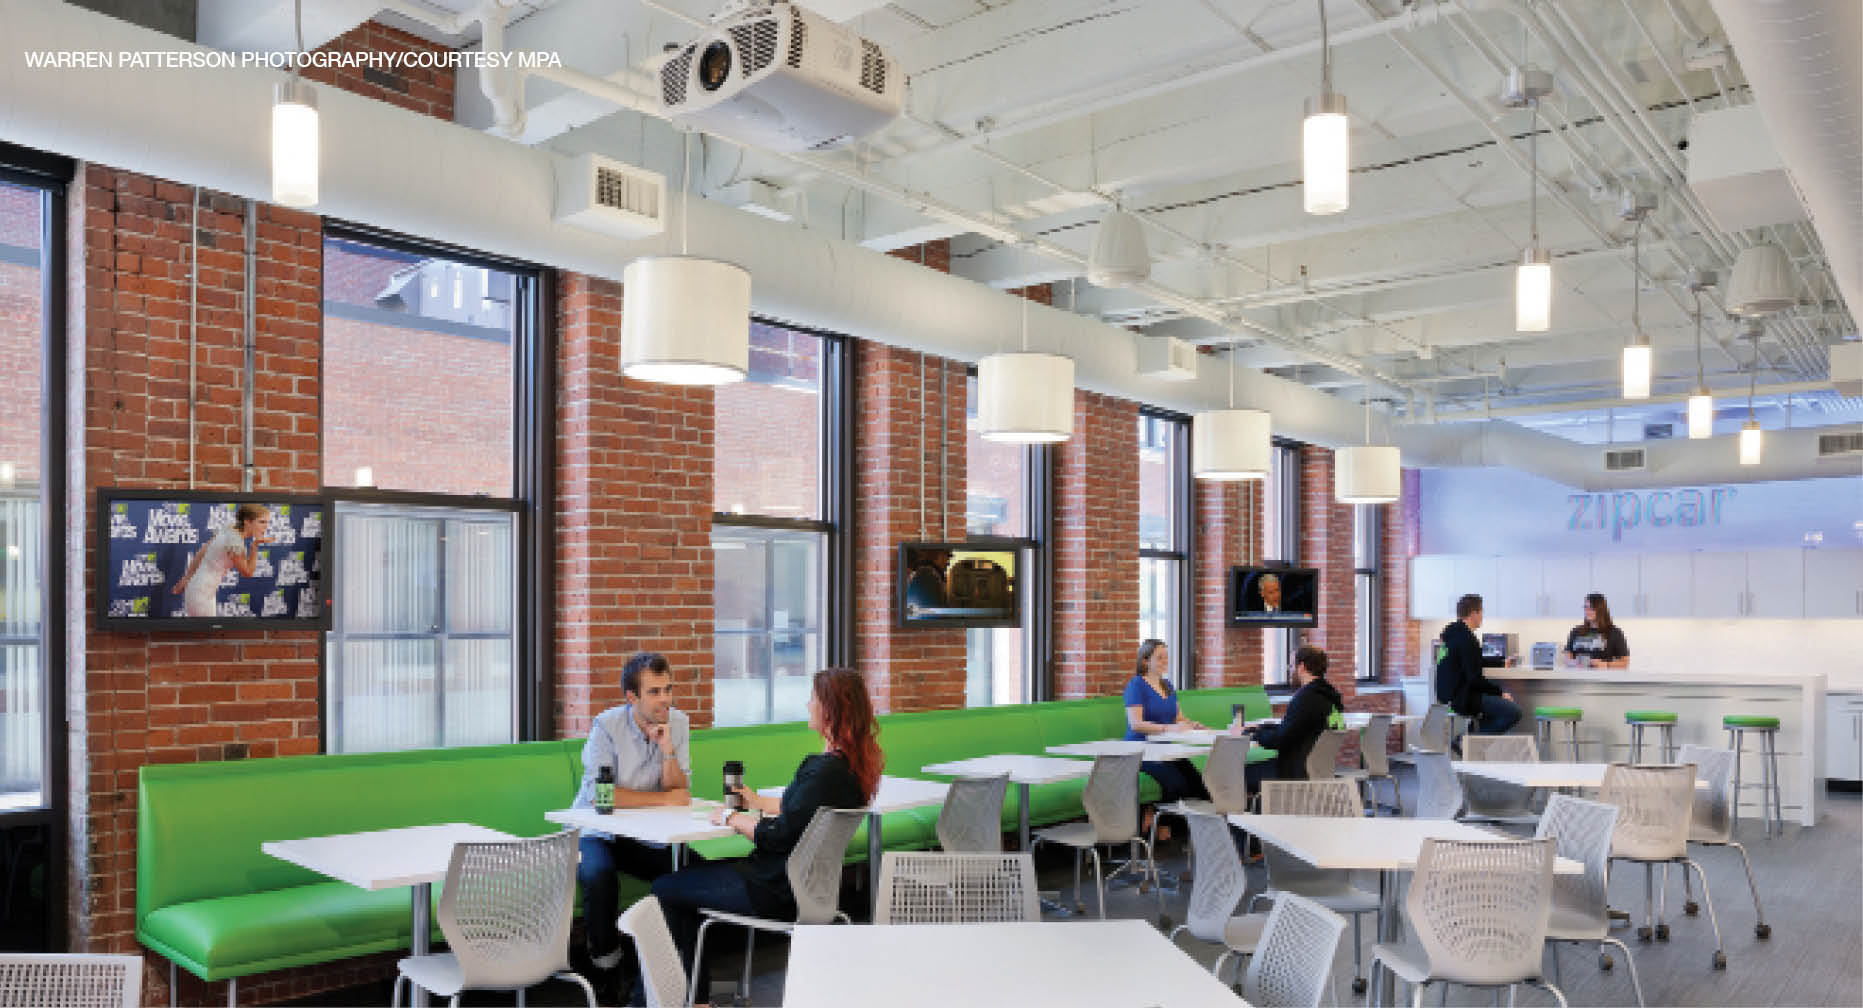 The open plenum at Zipcar was designed to enhance the visual appeal of the space, located in the Innovation District in Boston.